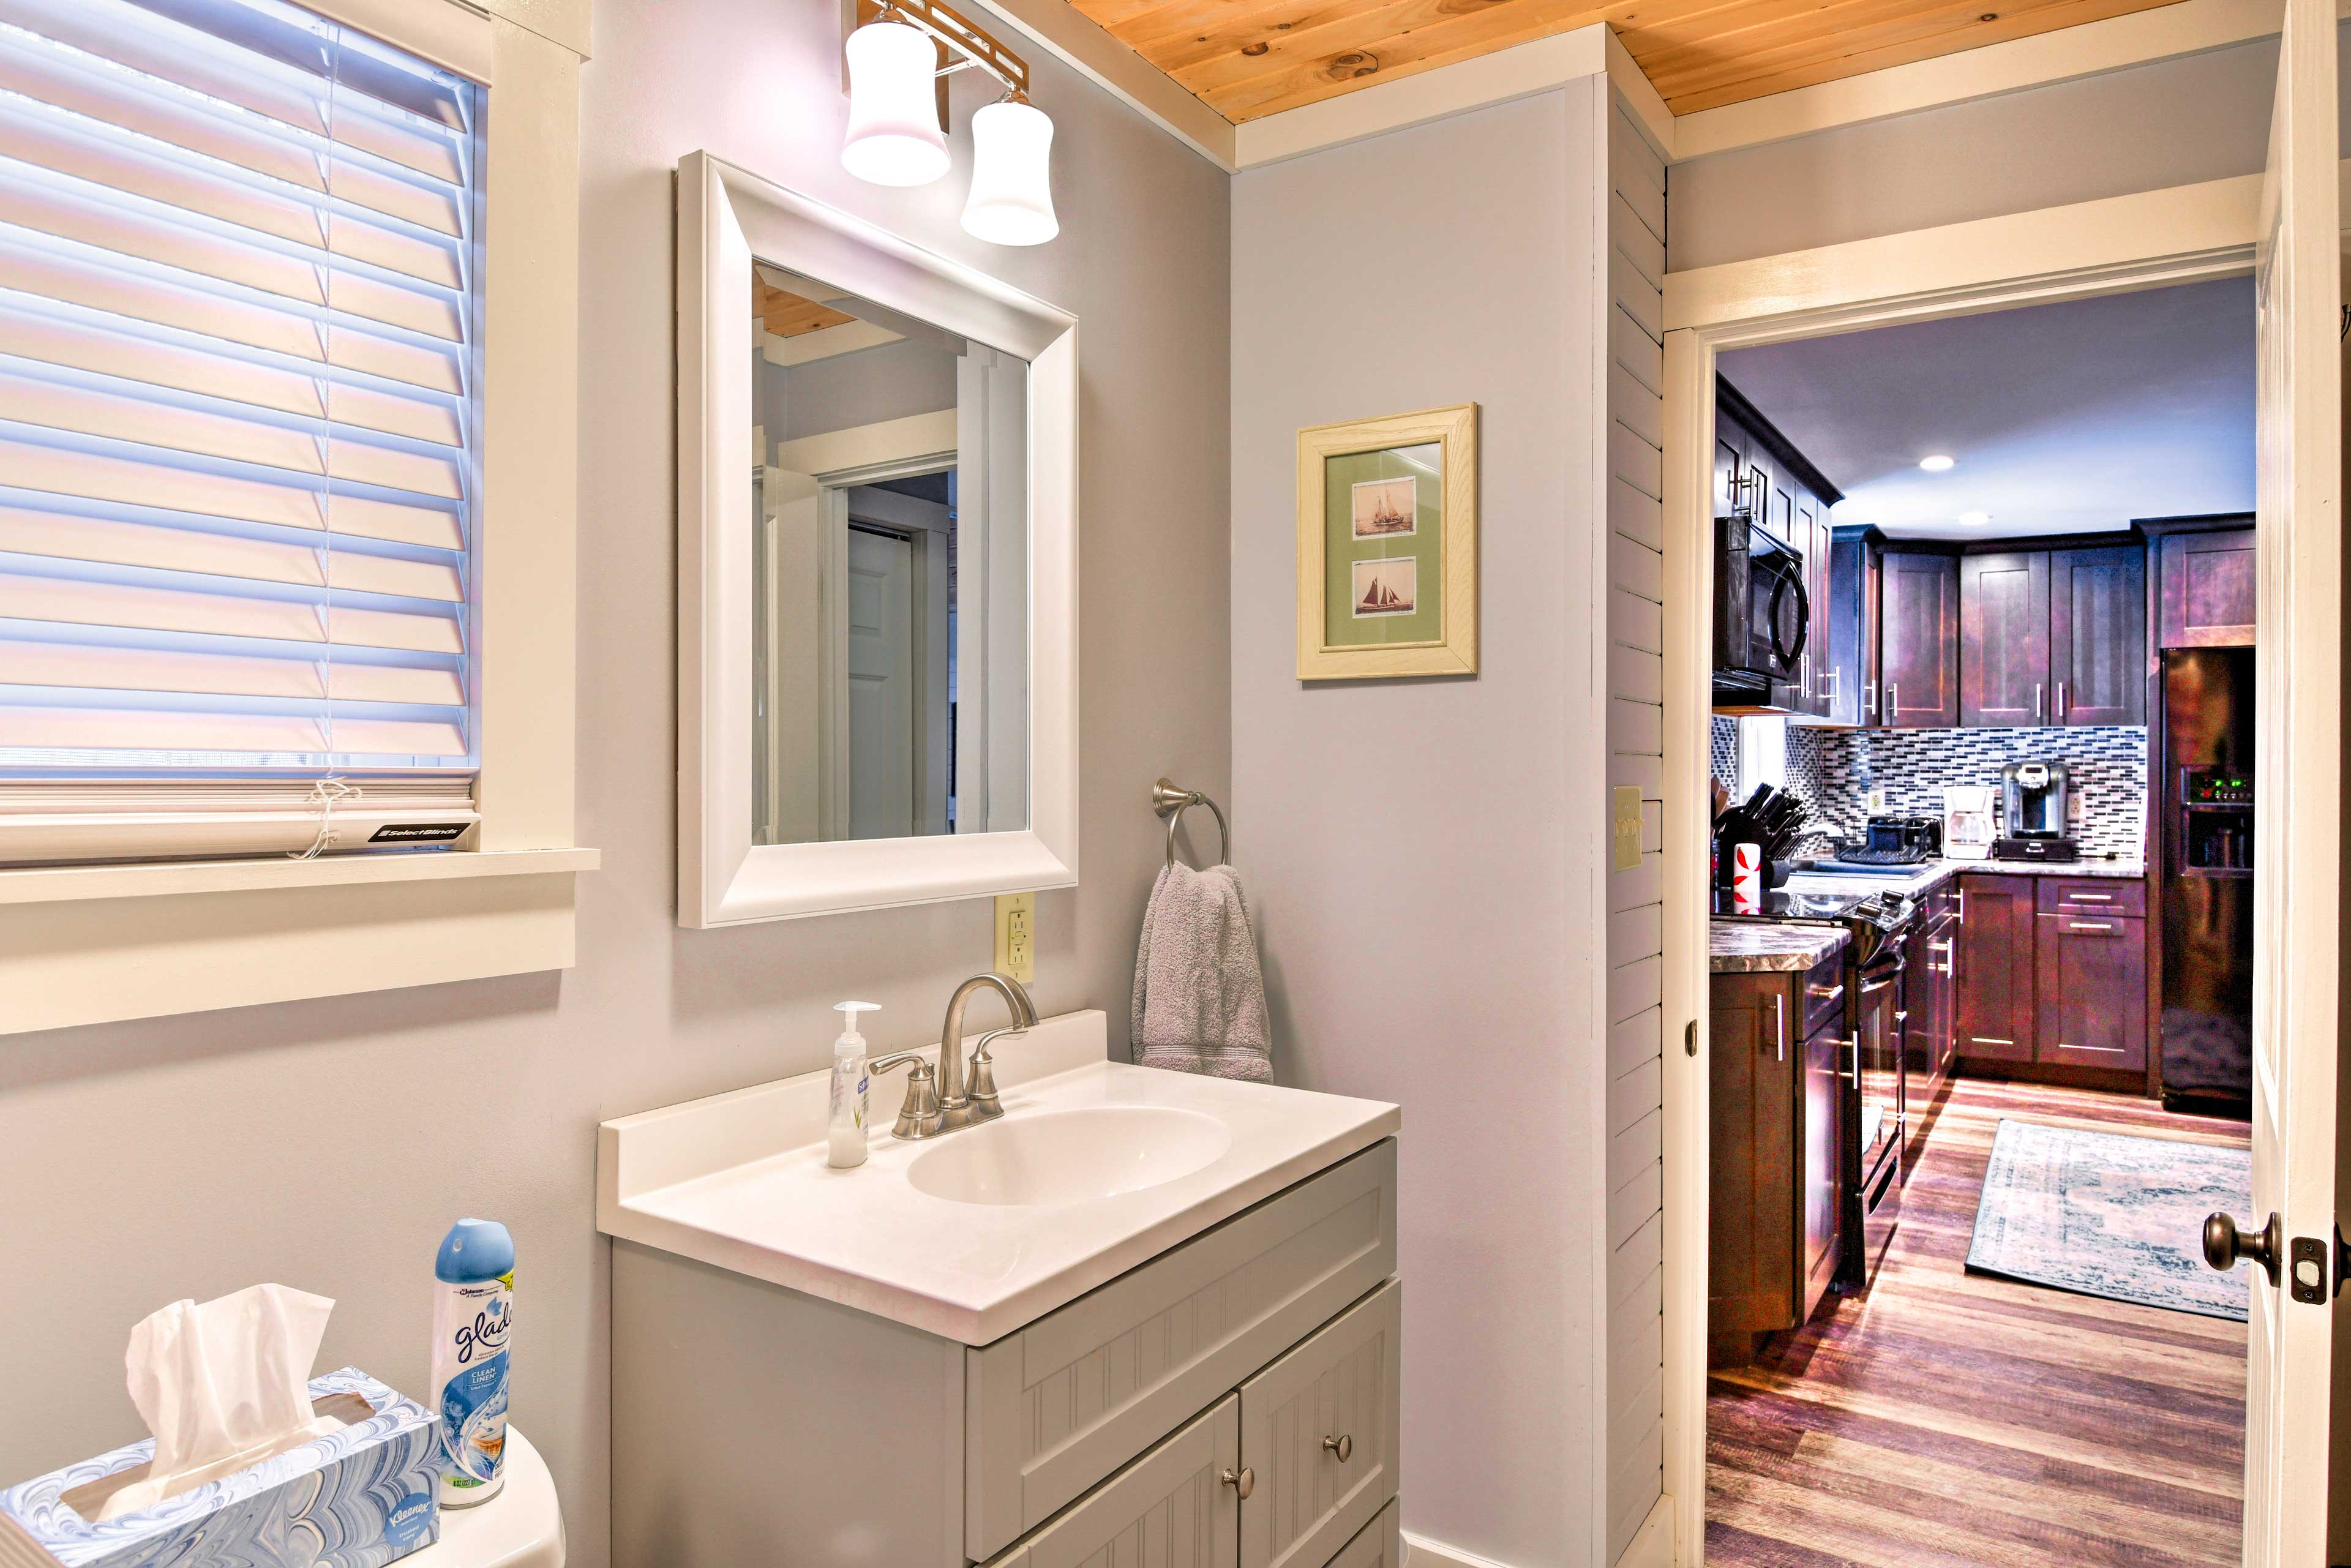 The first bathroom is located off the kitchen.